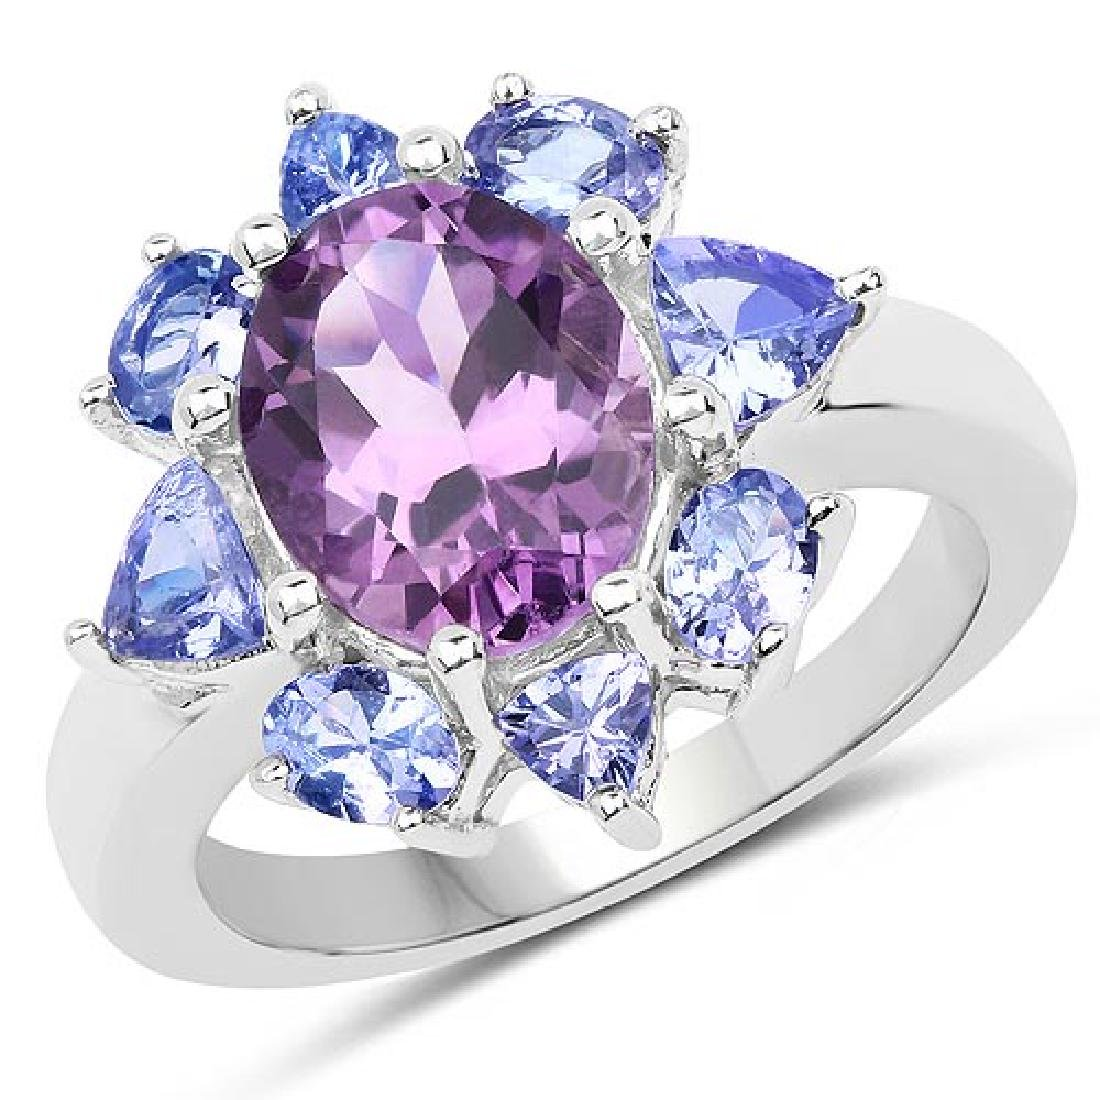 3.49 Carat Genuine Amethyst and Tanzanite .925 Sterling